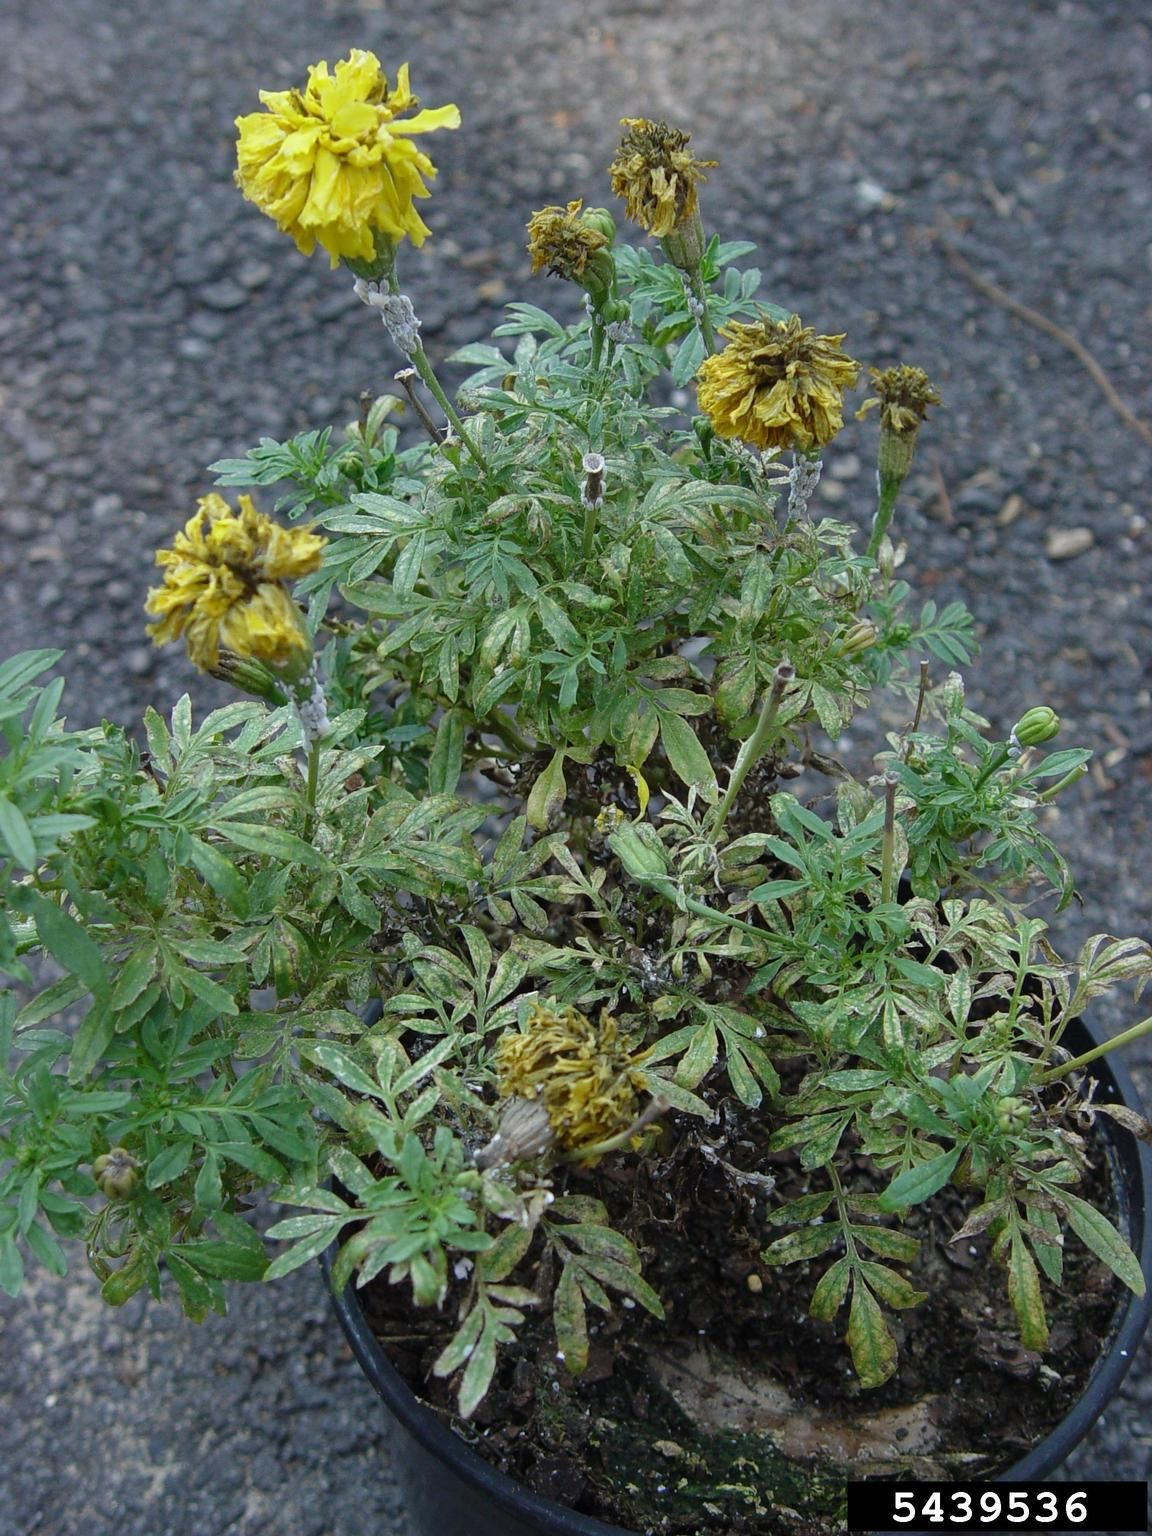 Marigold blossoms are a bright, sunny yellow, but the foliage below the flowers is supposed to be green. If your marigold leaves are turning yellow, you've got marigold leaf problems. To learn what might be causing yellowing marigold leaves, click here.